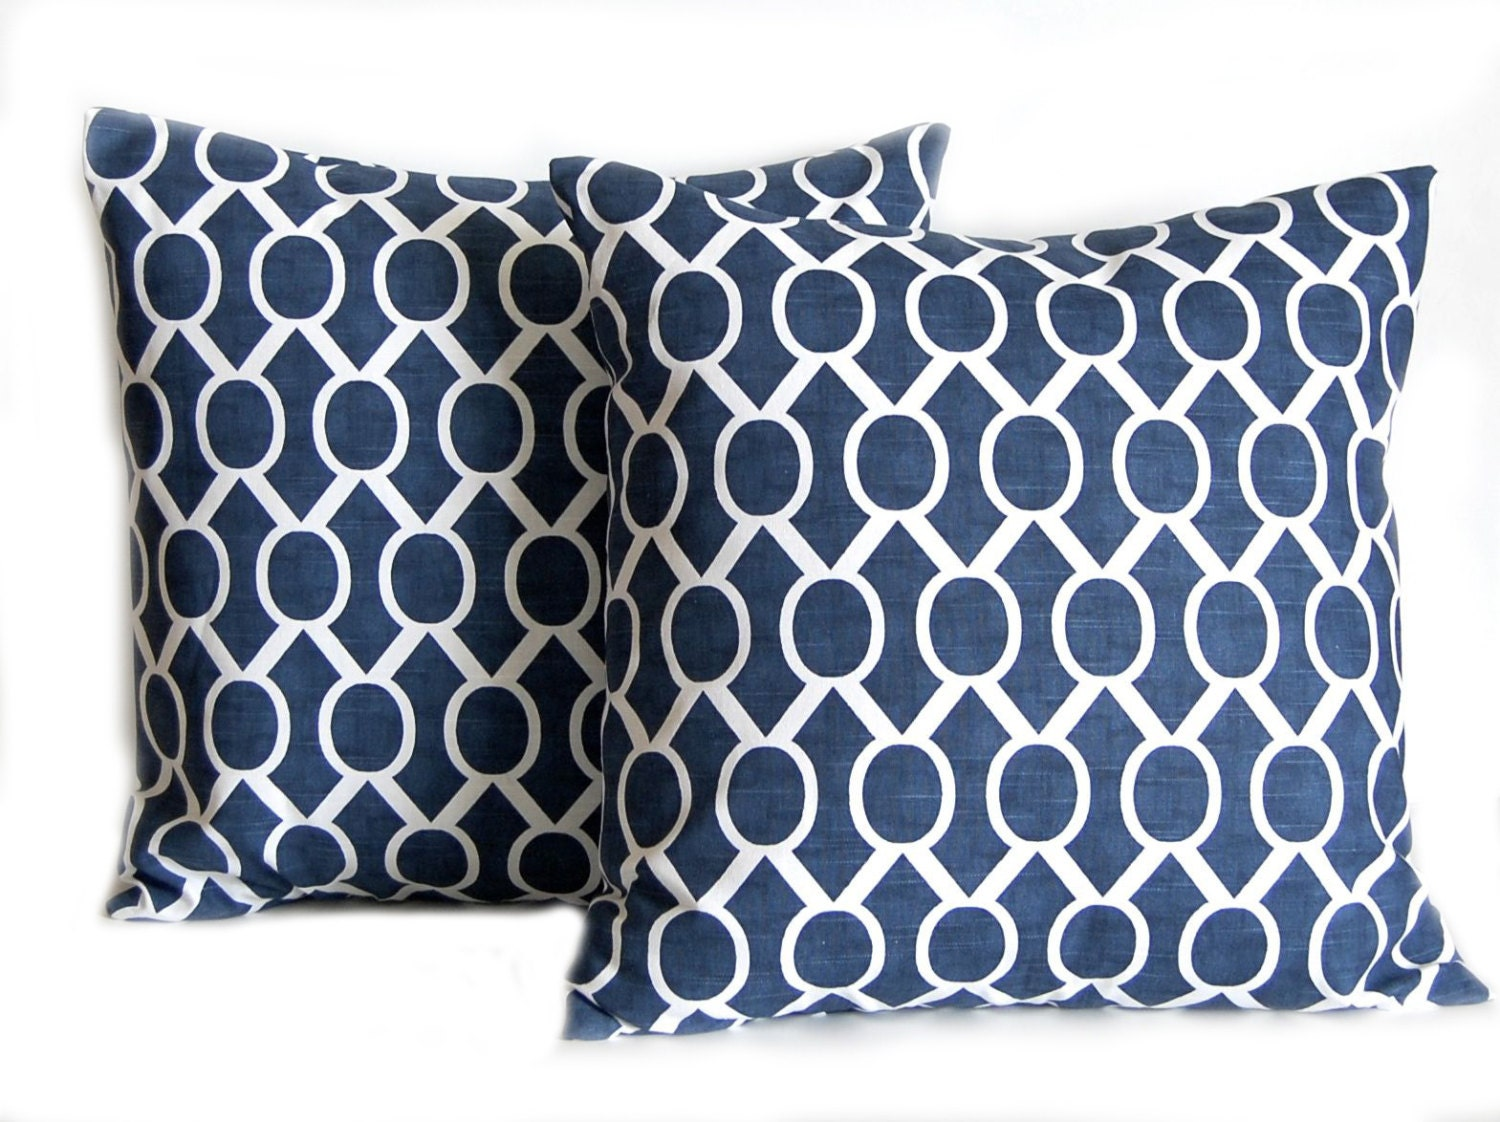 Navy Blue Decorative Pillow Covers : Navy Pillow Covers Blue Pillows Throw Pillow by FestiveHomeDecor